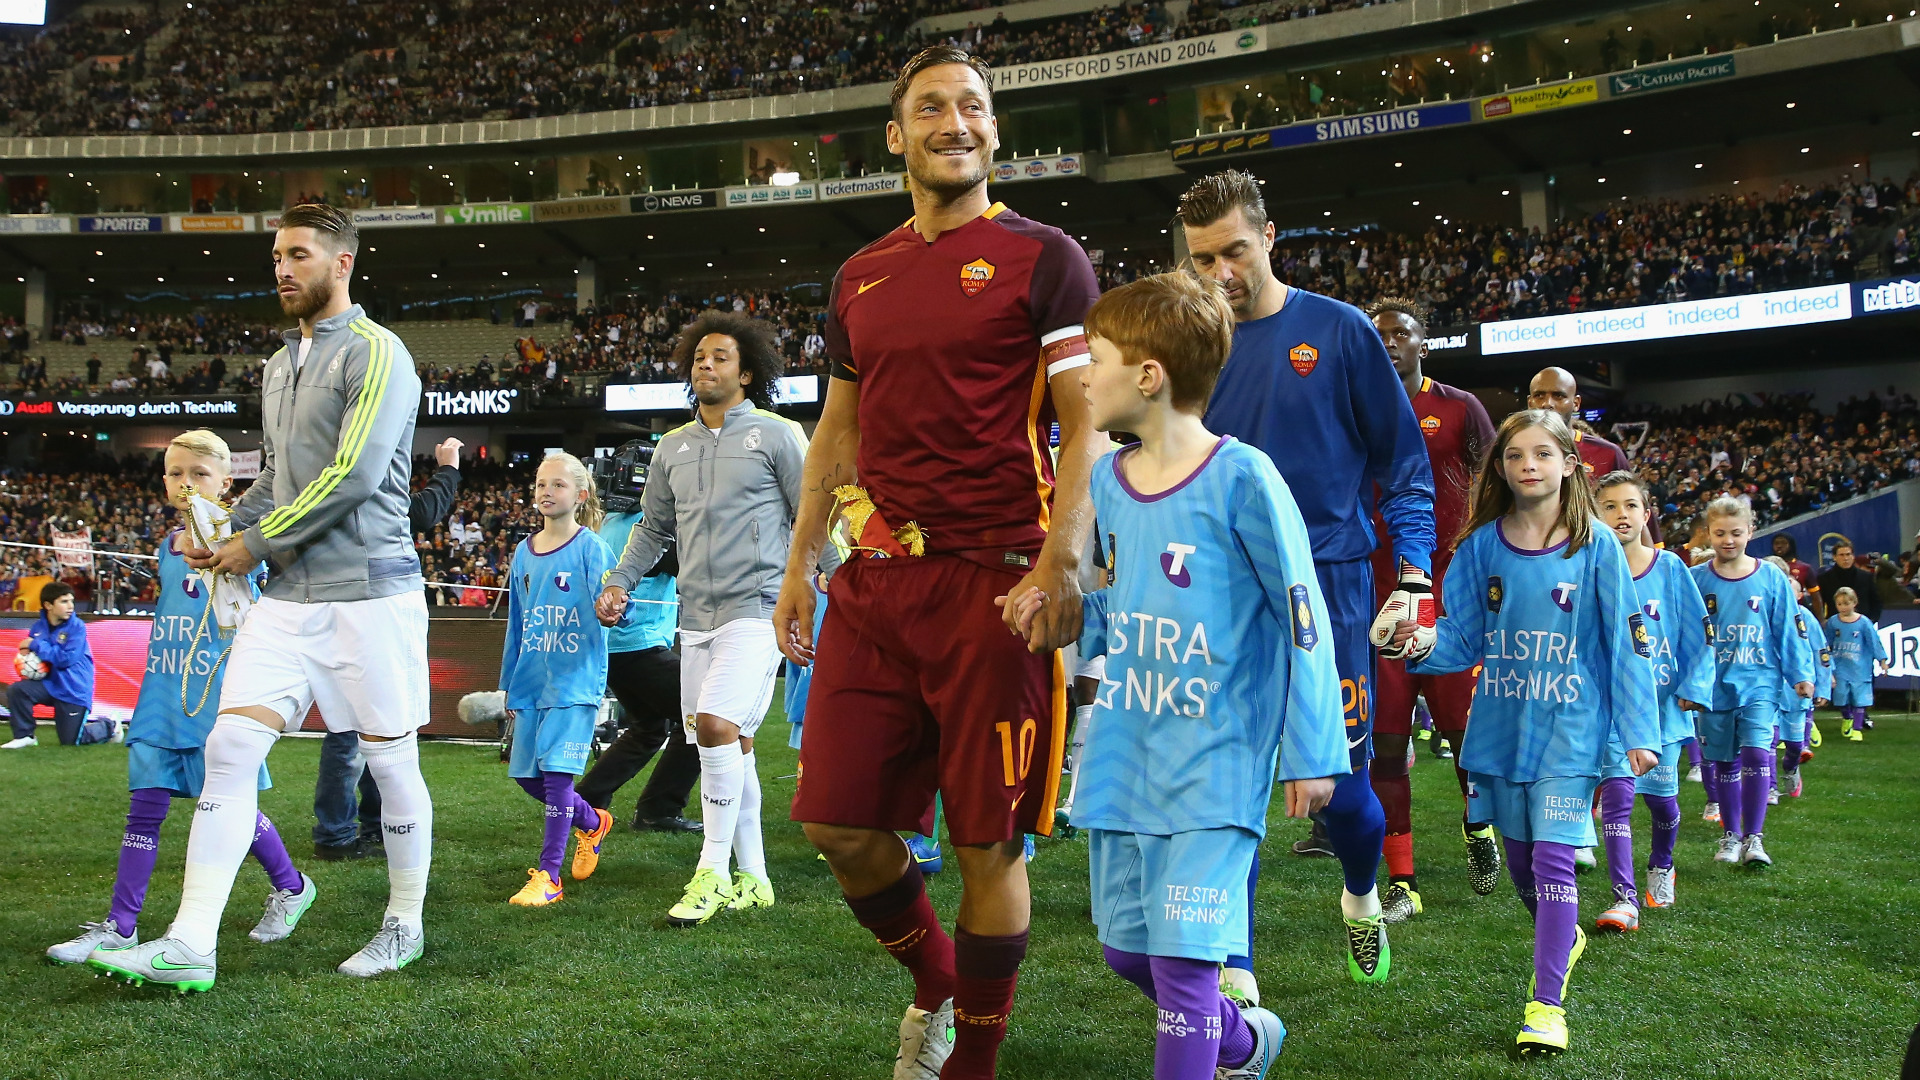 Francesco Totti Real Madrid Roma International Champions Cup 07182015